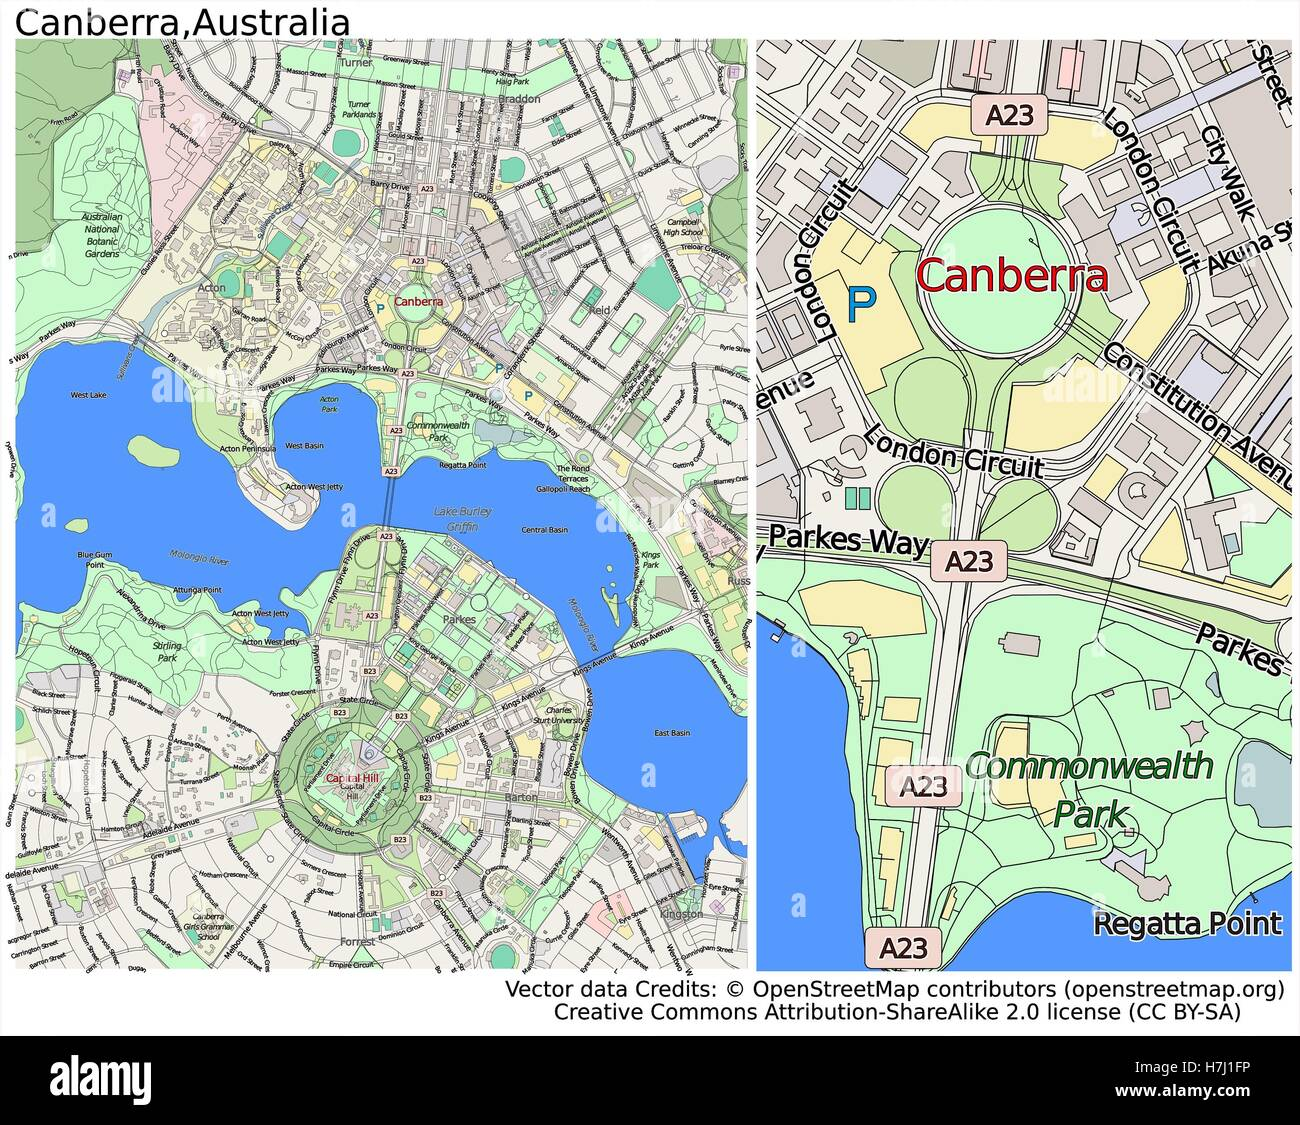 Canberra Australia aerial view city map Stock Photo Royalty Free Image 1251